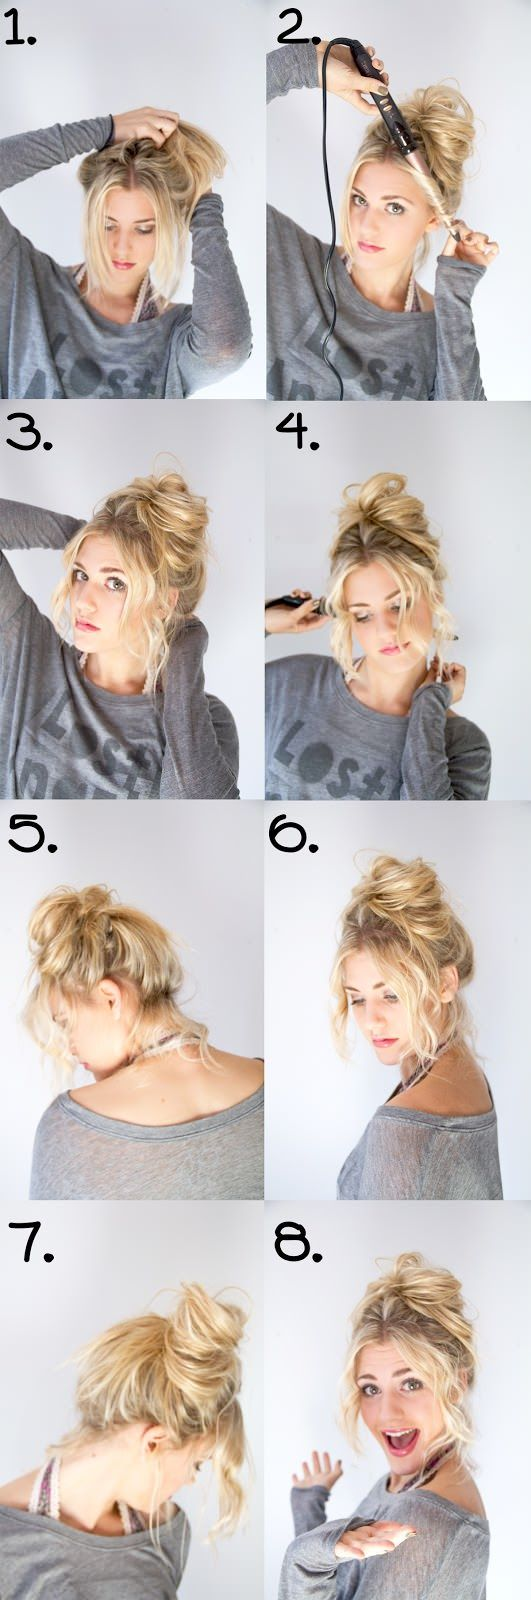 Swell 1000 Ideas About Easy Messy Hairstyles On Pinterest Curls Hair Short Hairstyles Gunalazisus